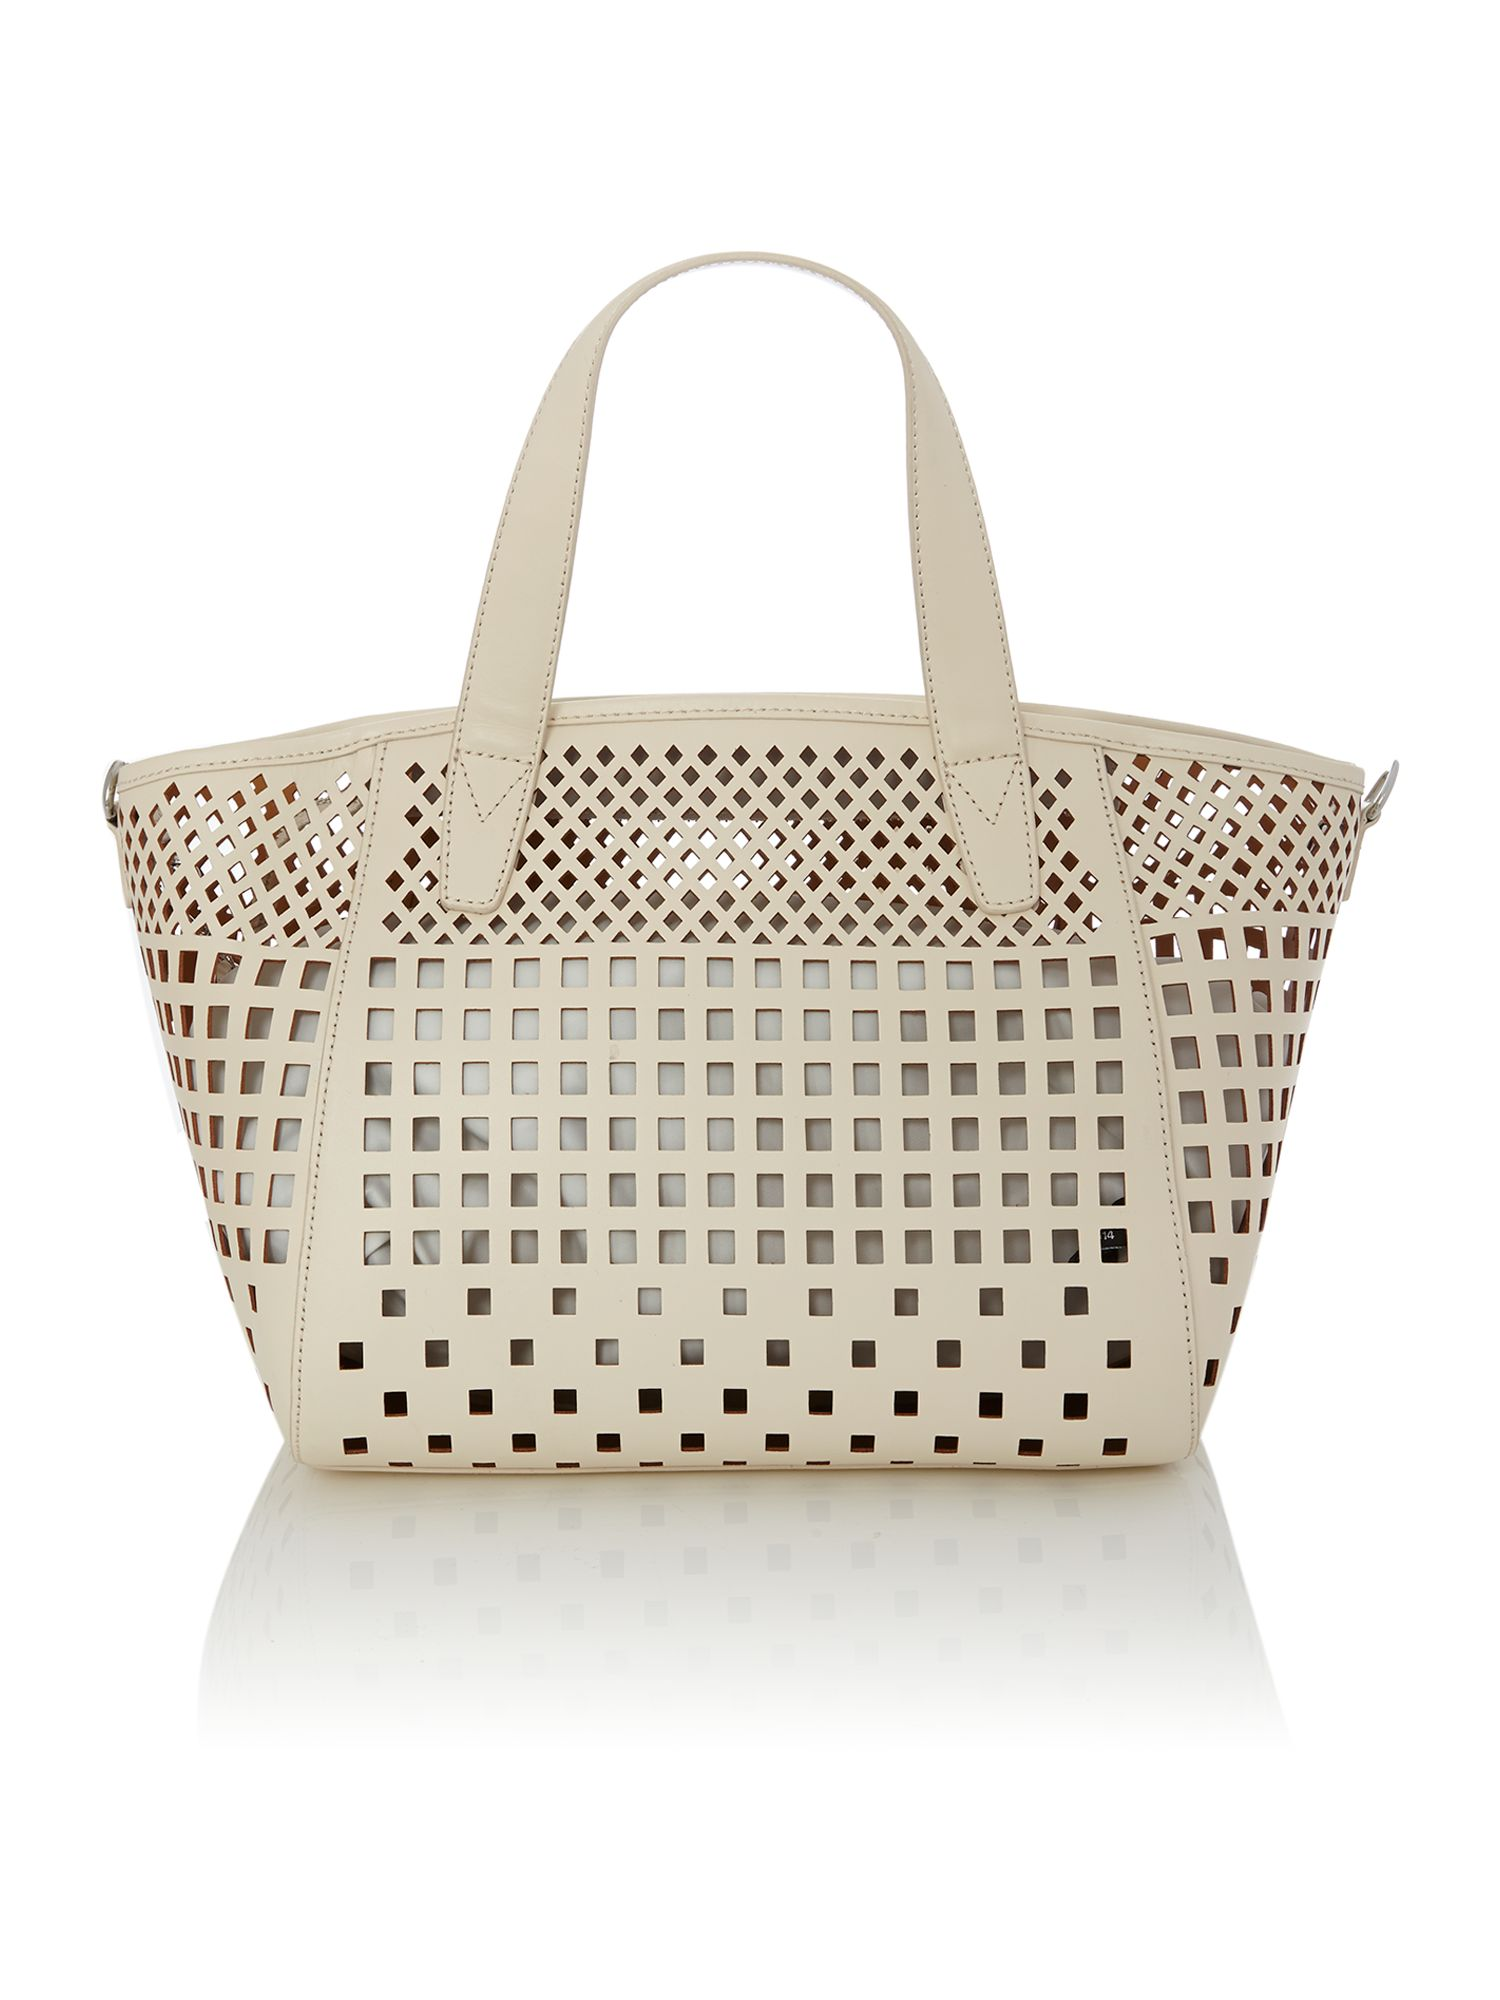 Geometric perforation ivory tote bag